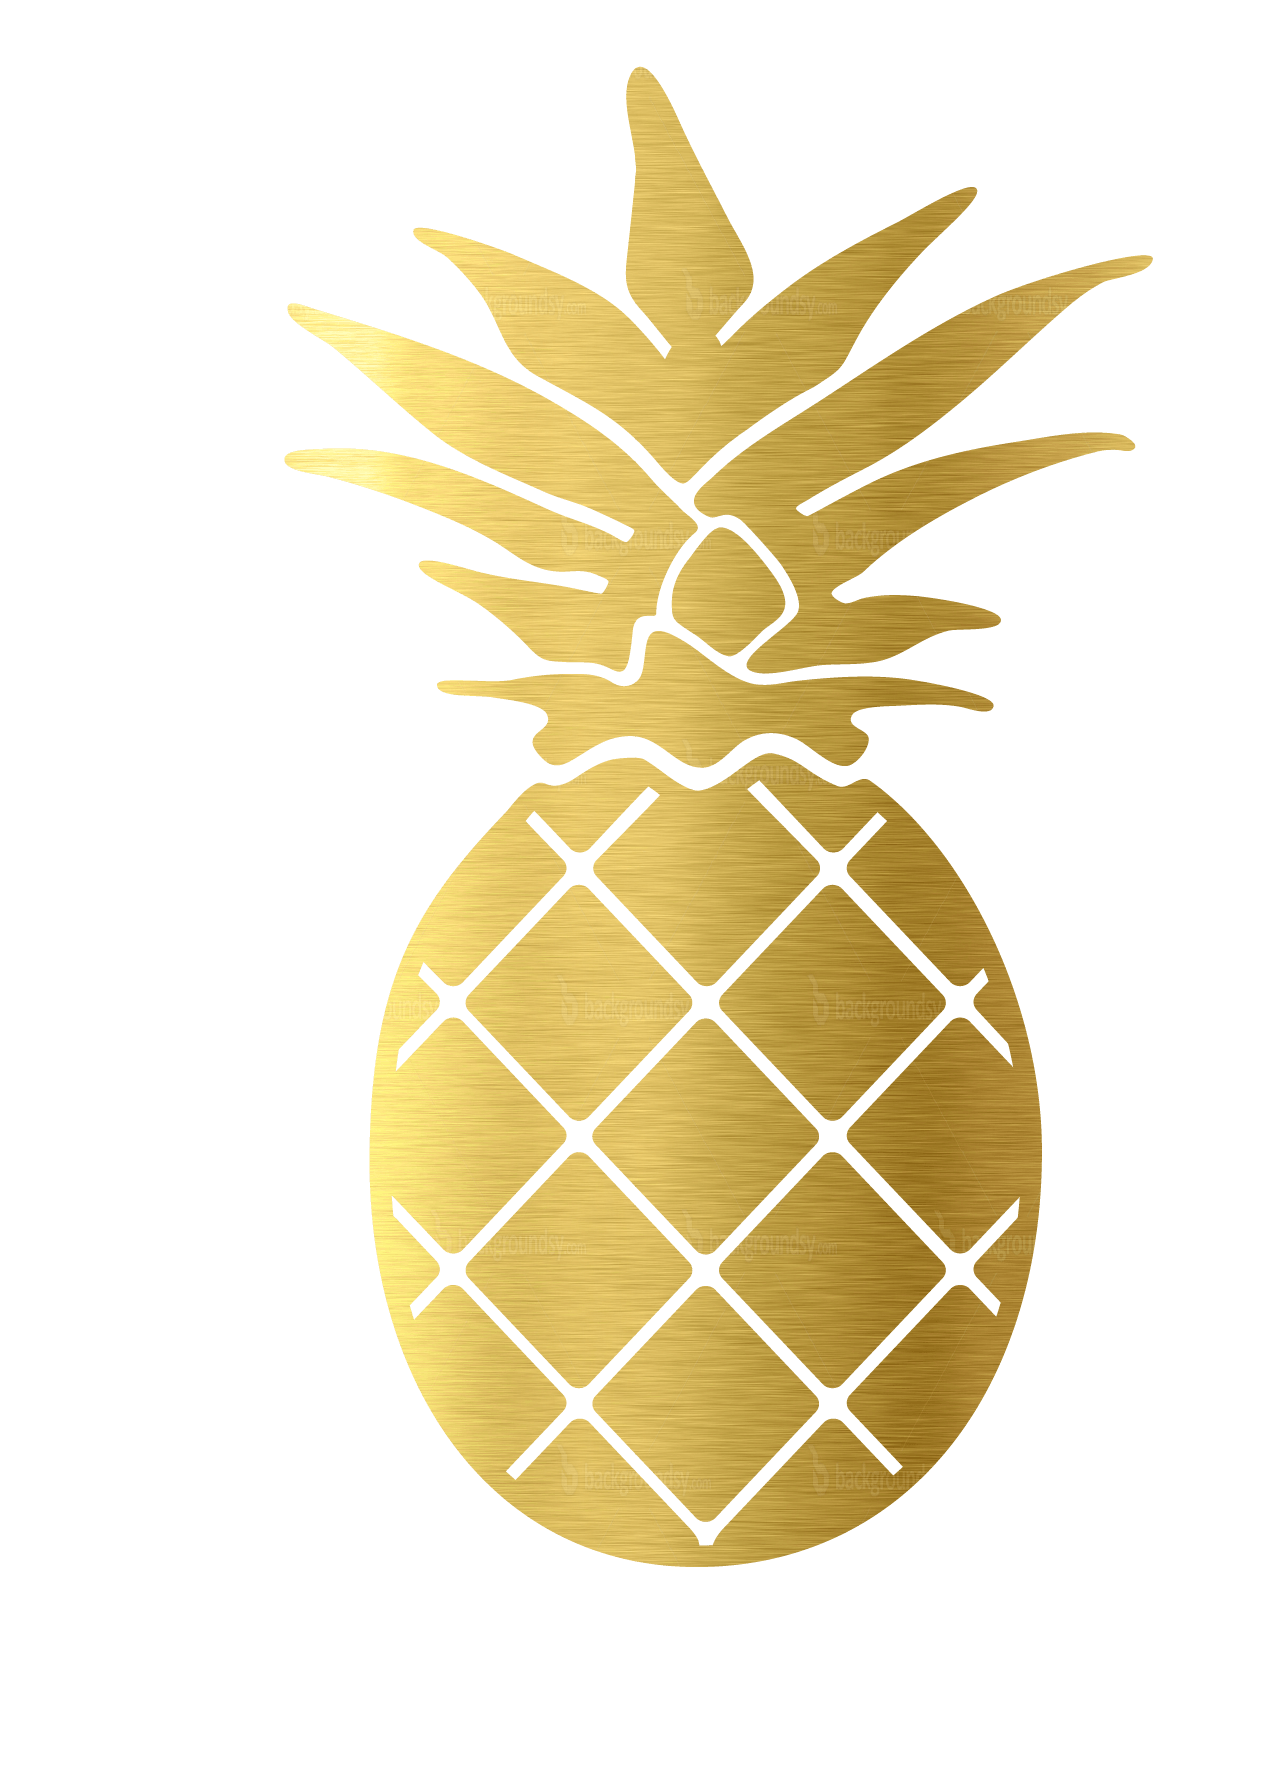 Stickers transparent gold. Decals palmetto moon pineapple